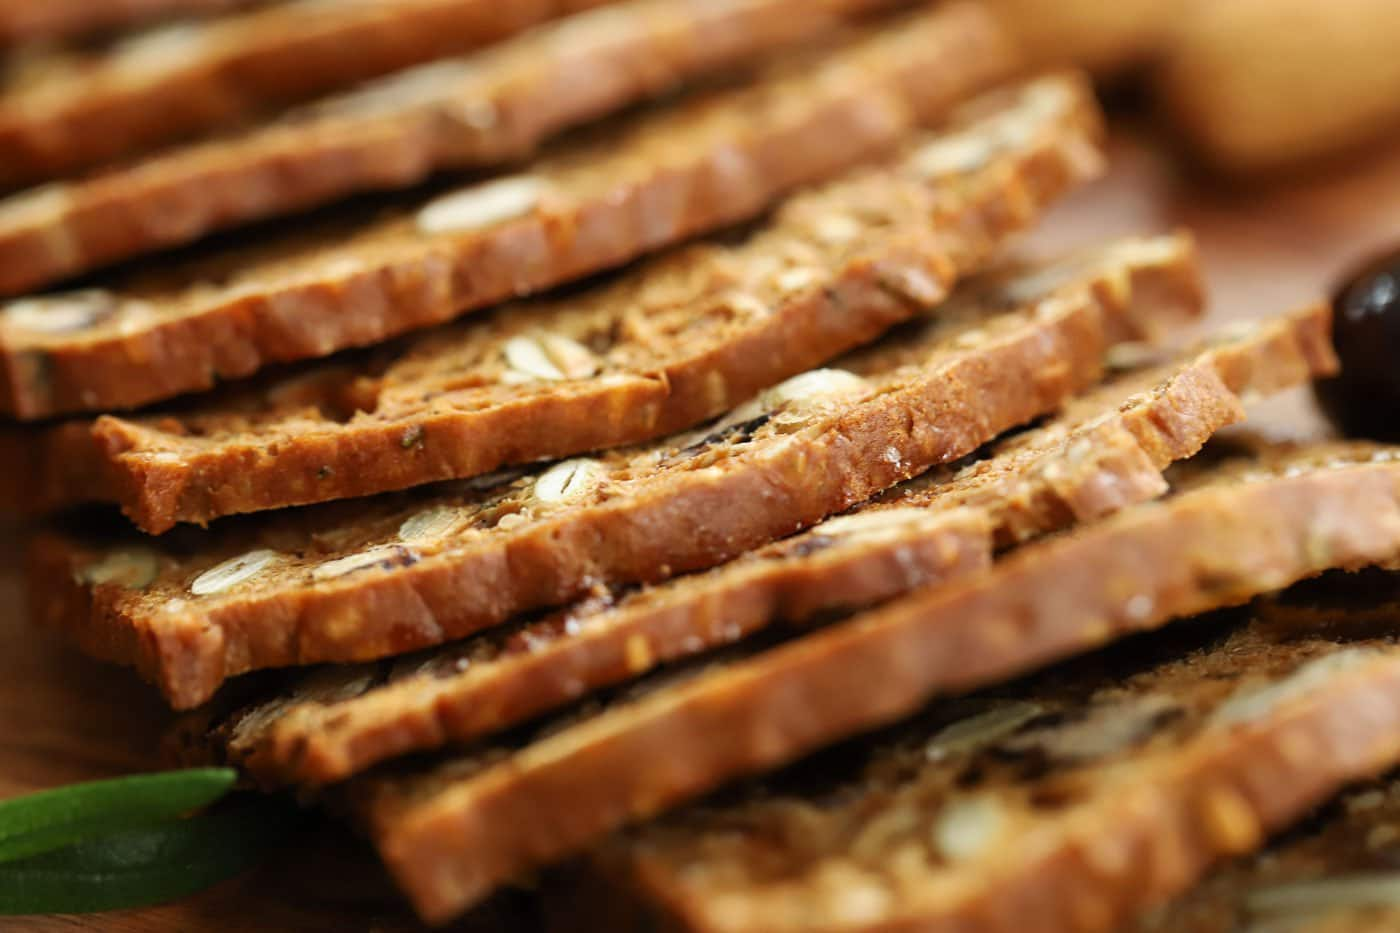 Extreme closeup photo of thinly cut Copycat Rosemary Pecan Raincoast Crackers.